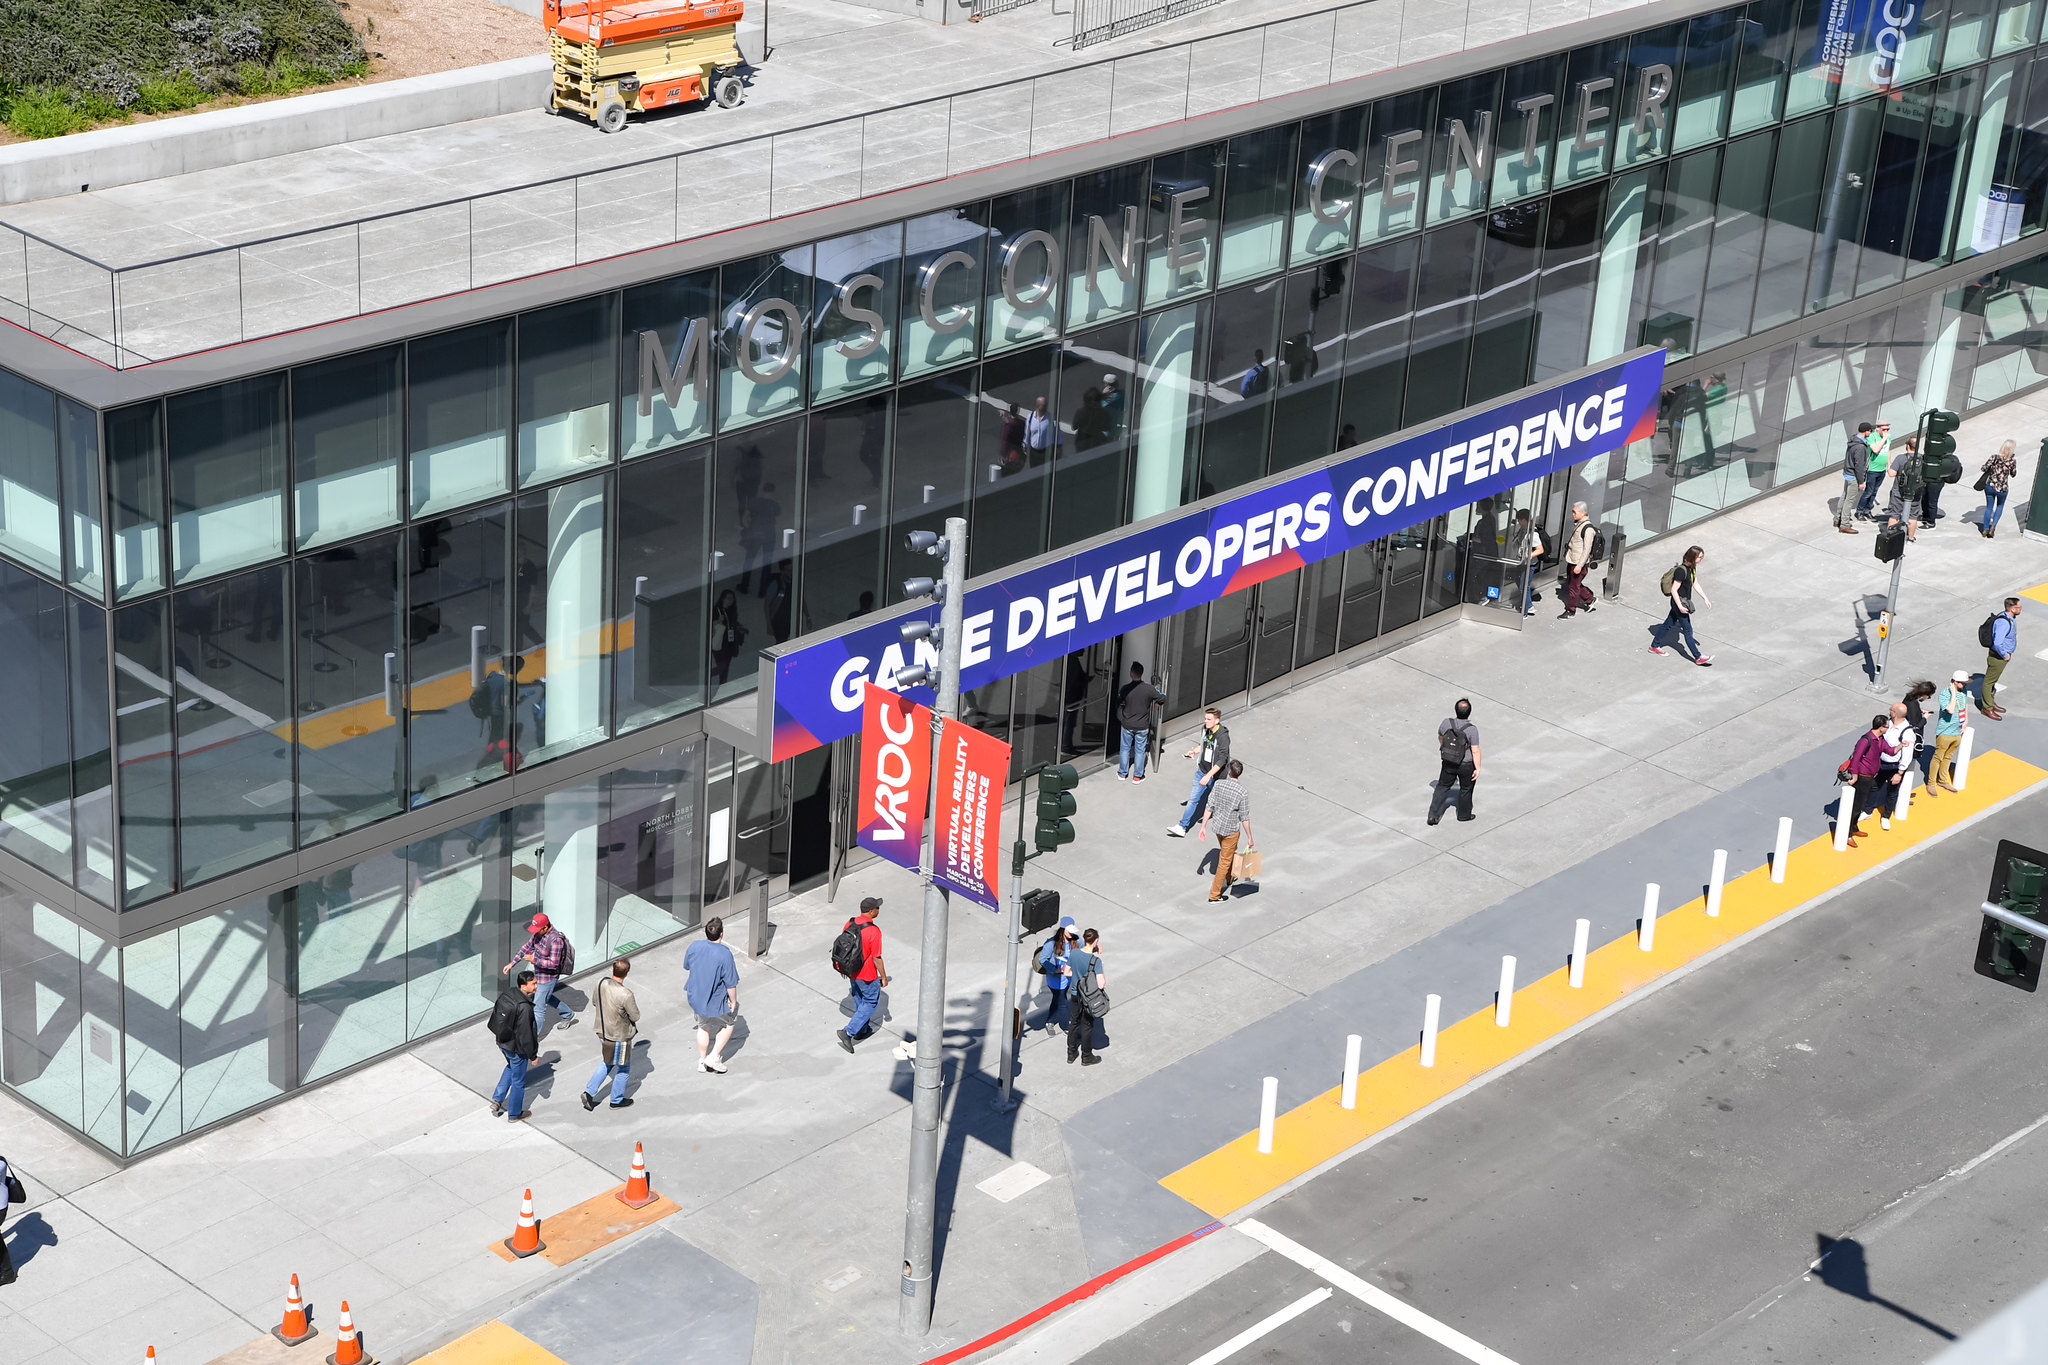 More companies cancel GDC showings, but GDC organizers refuse to admit defeat screenshot